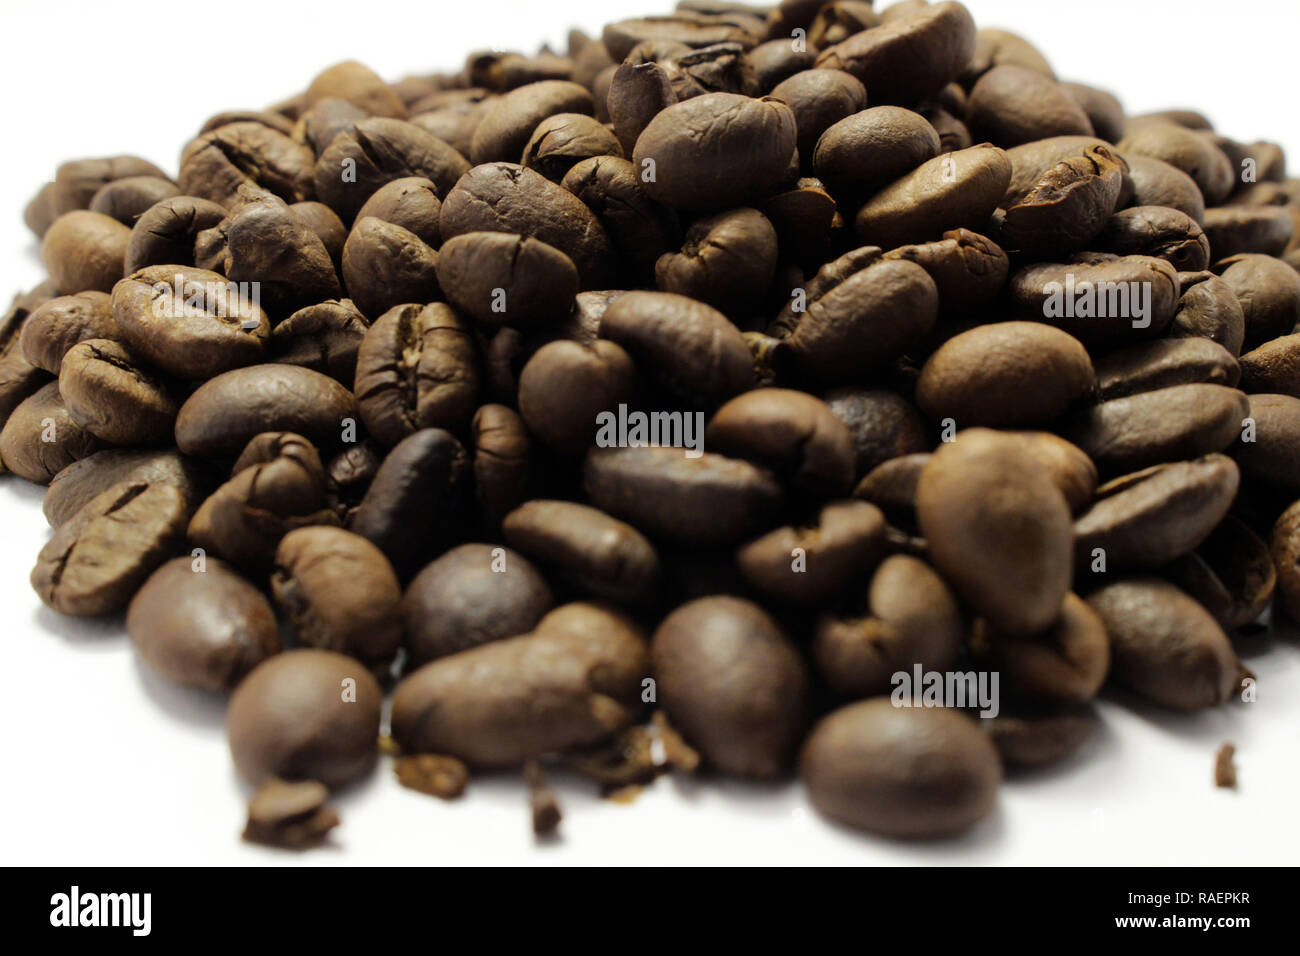 Indonesian roasted coffee beans, your source for a cup of coffee. Fresh! Stock Photo